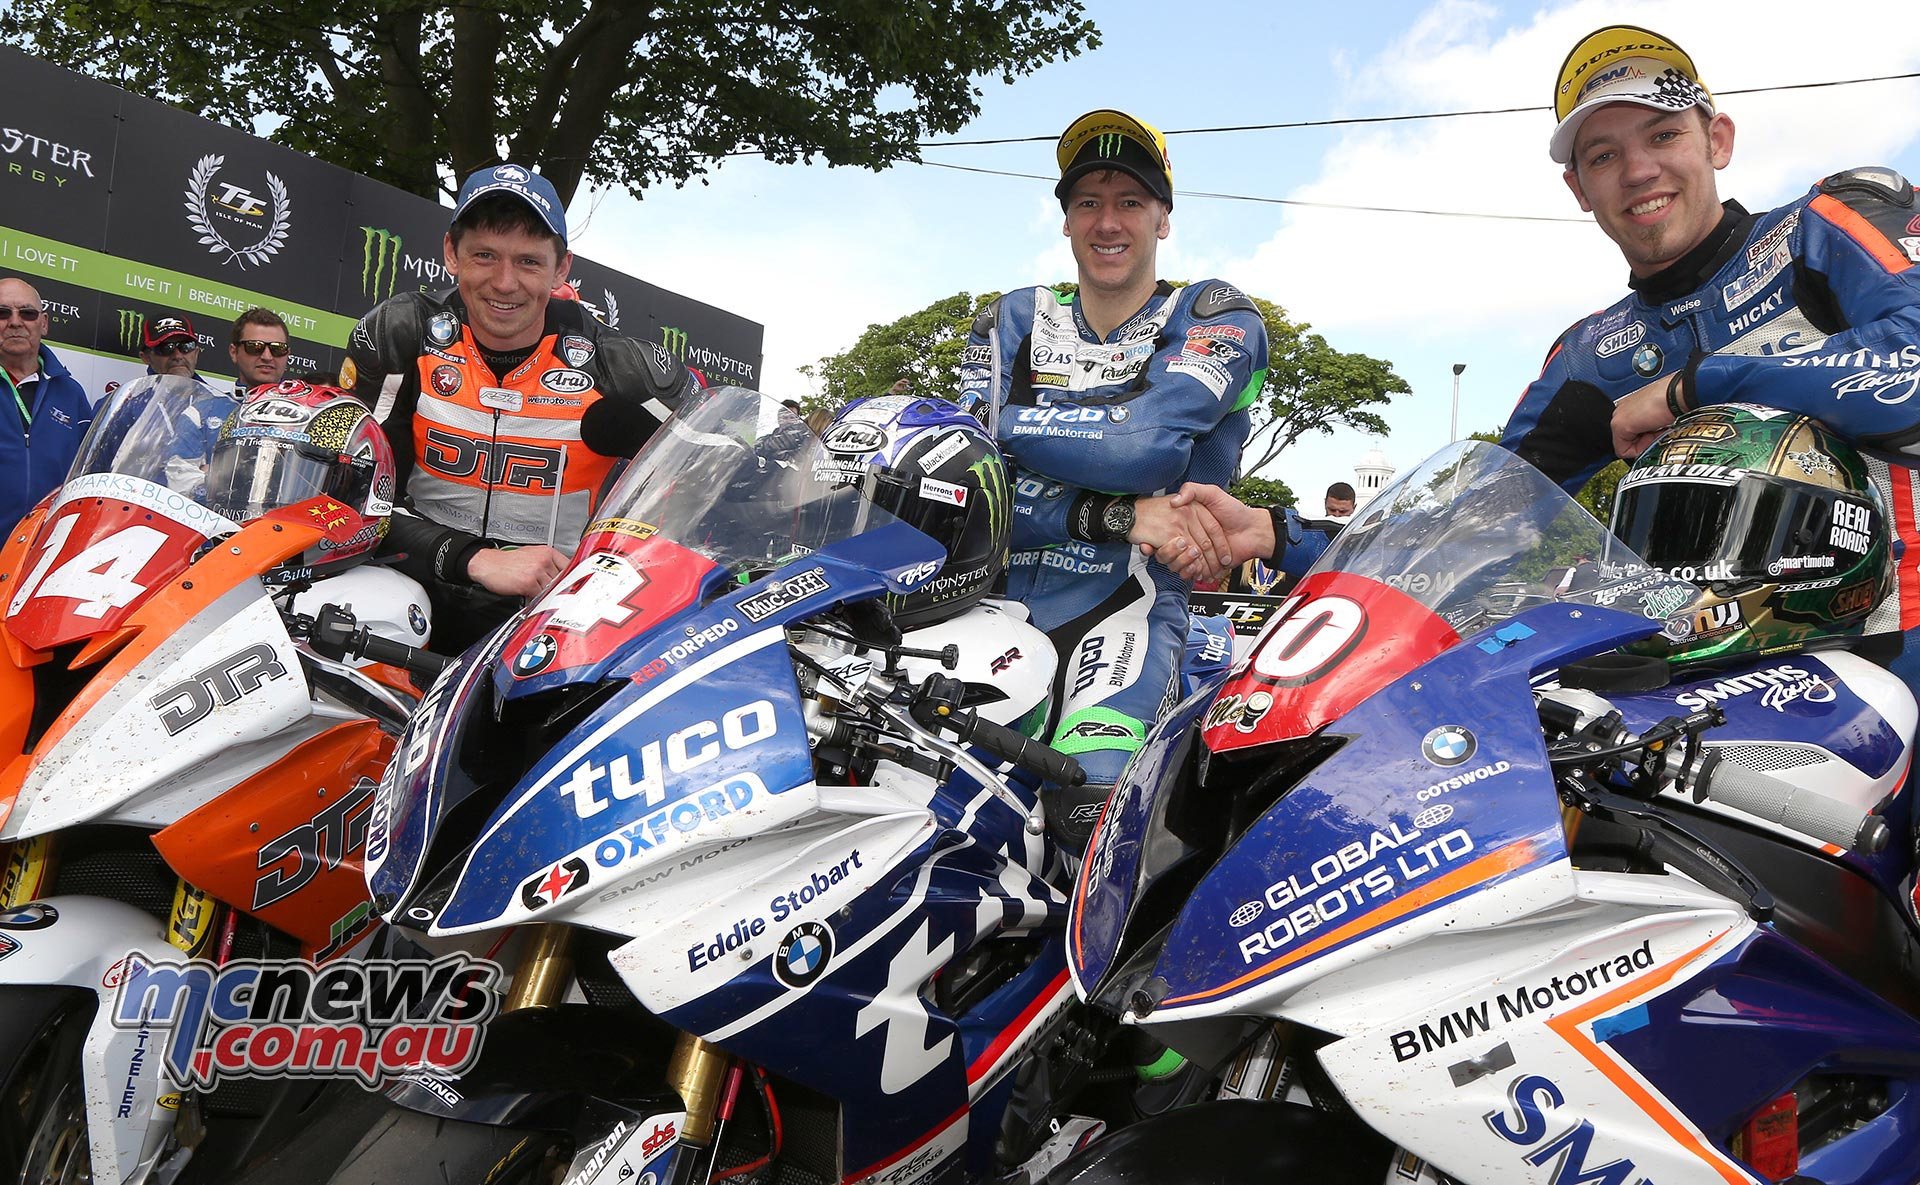 All BMW podium at the 2017 Superstock TT with Ian Hutchinson leading home Peter Hickman and Dan Kneen in third